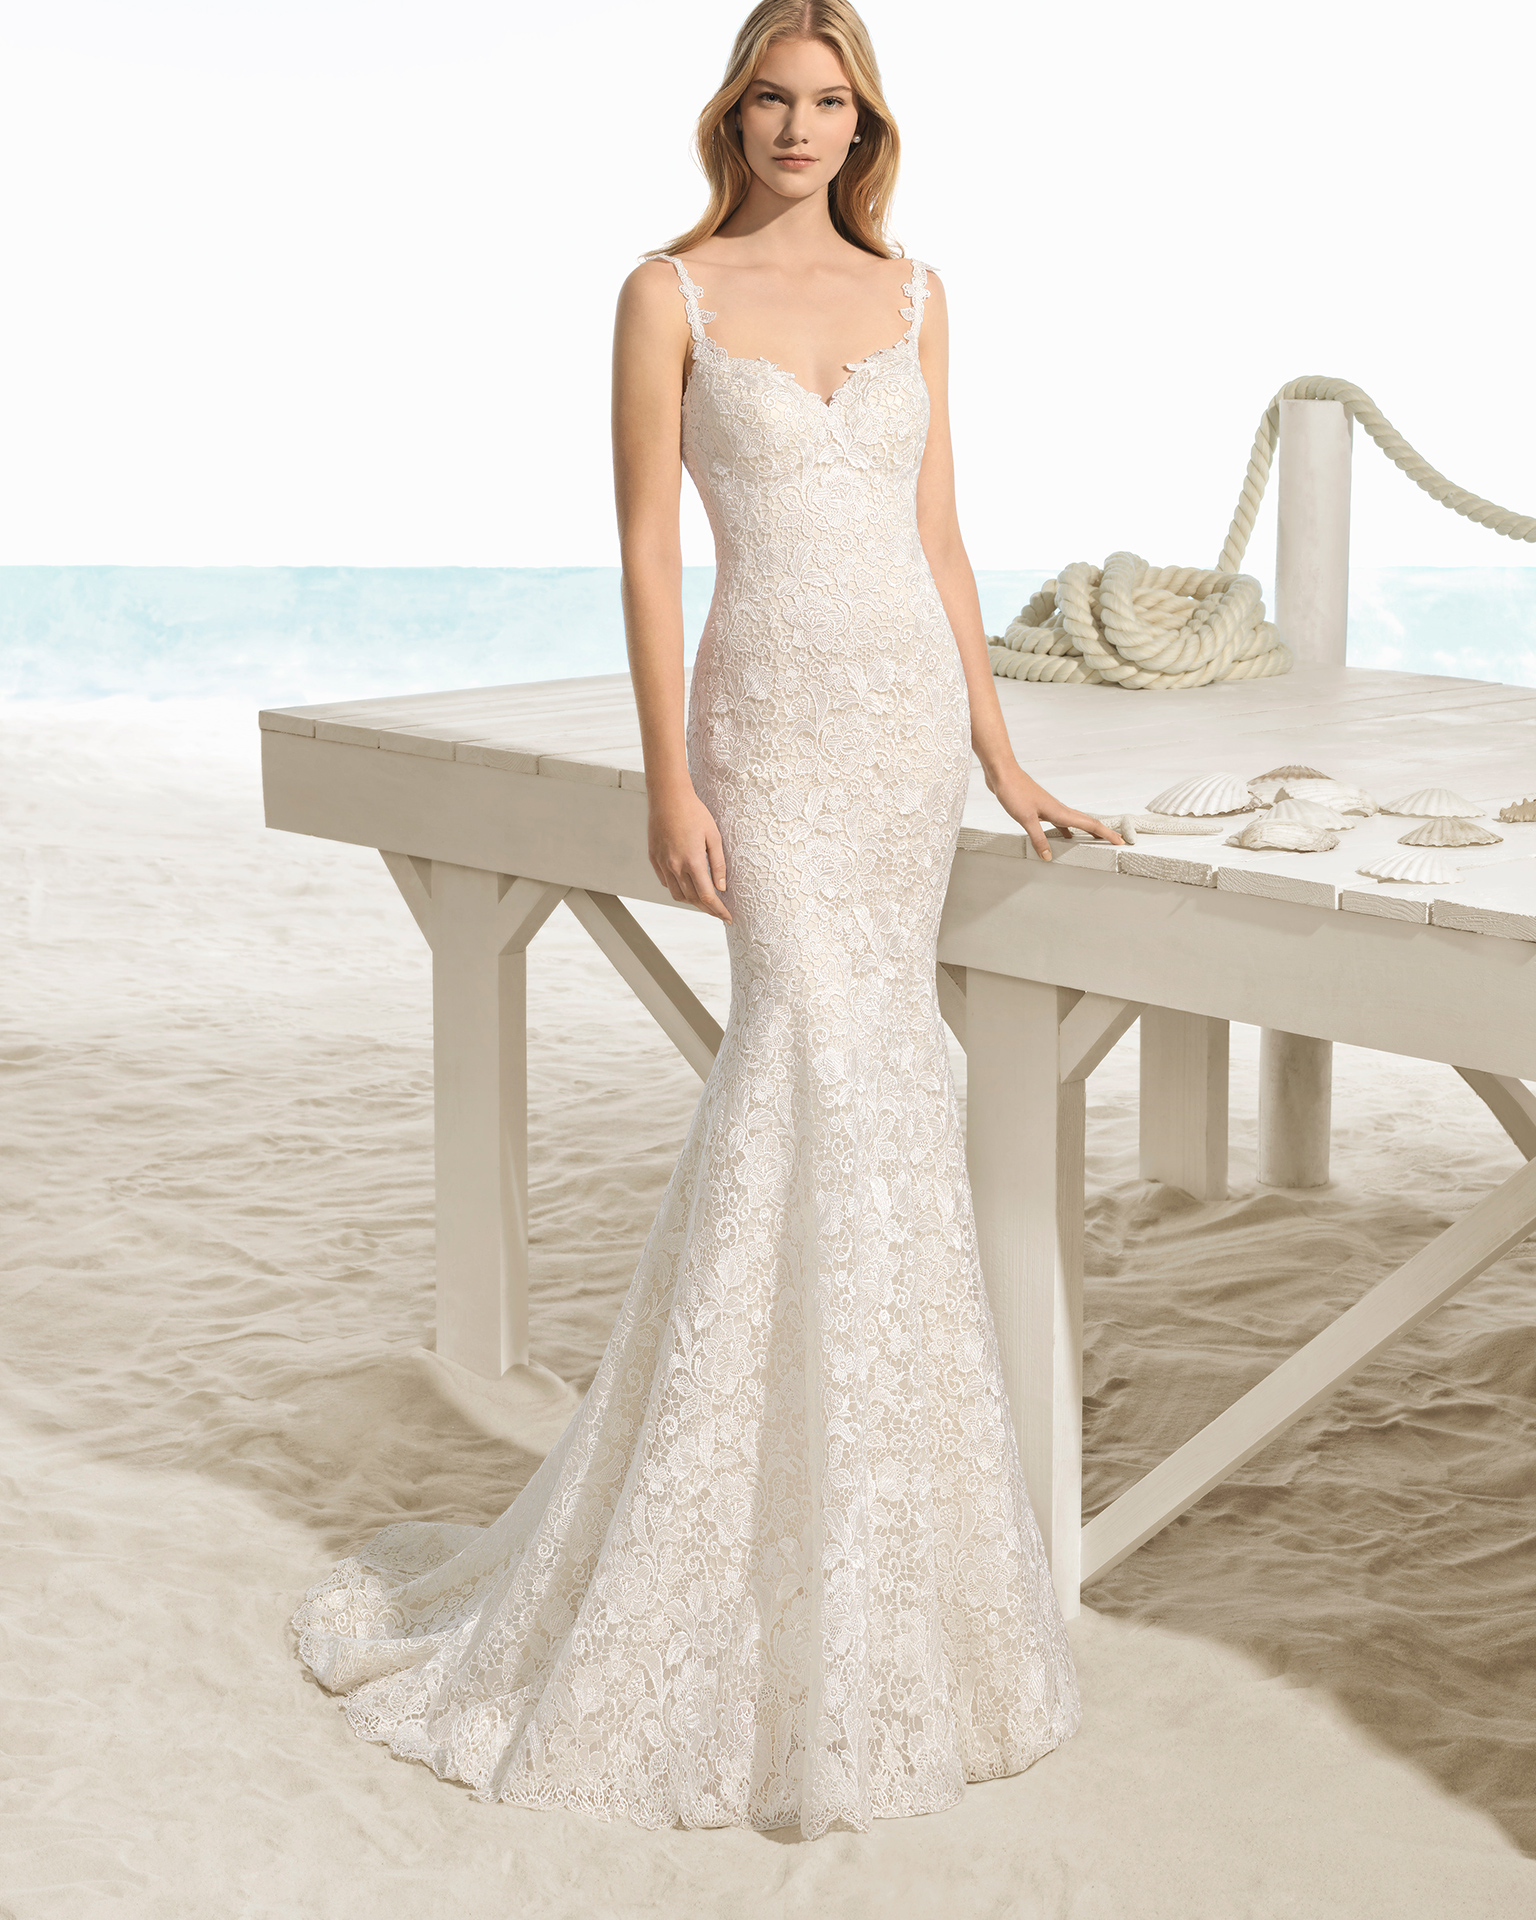 Mermaid-style guipure lace wedding dress with sweetheart neckline and low back, in ivory.